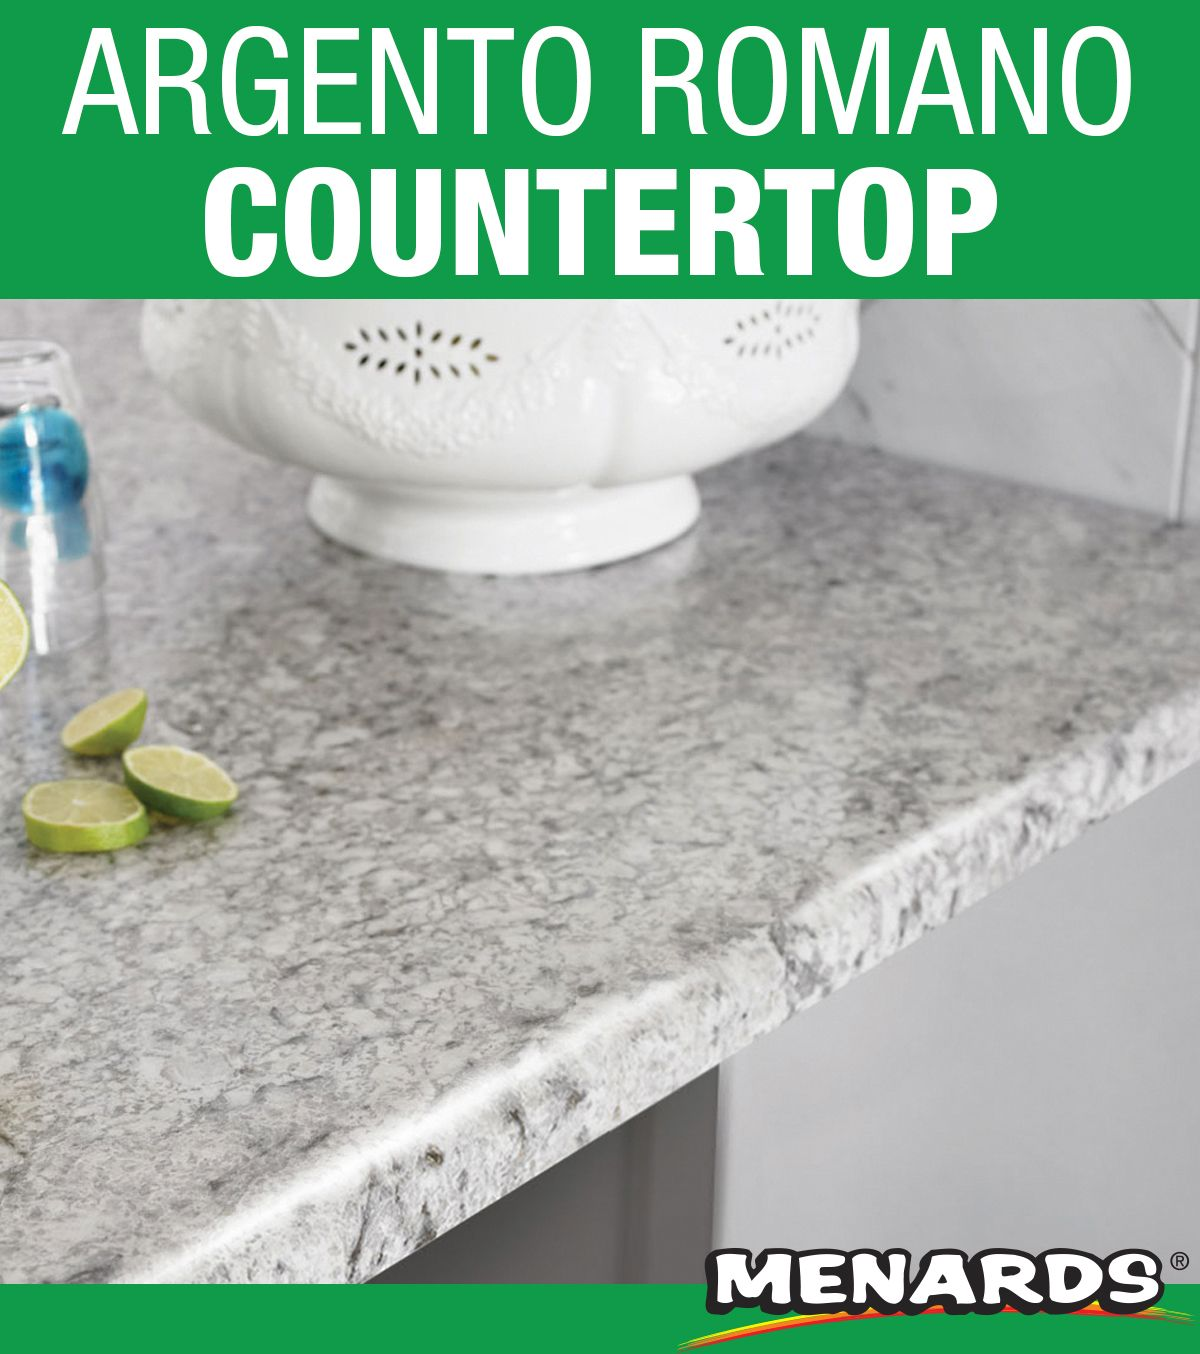 Add Style To Your Kitchen With Argento Romano Customcraft Laminate Countertop It Pairs Well With Gray And Whi